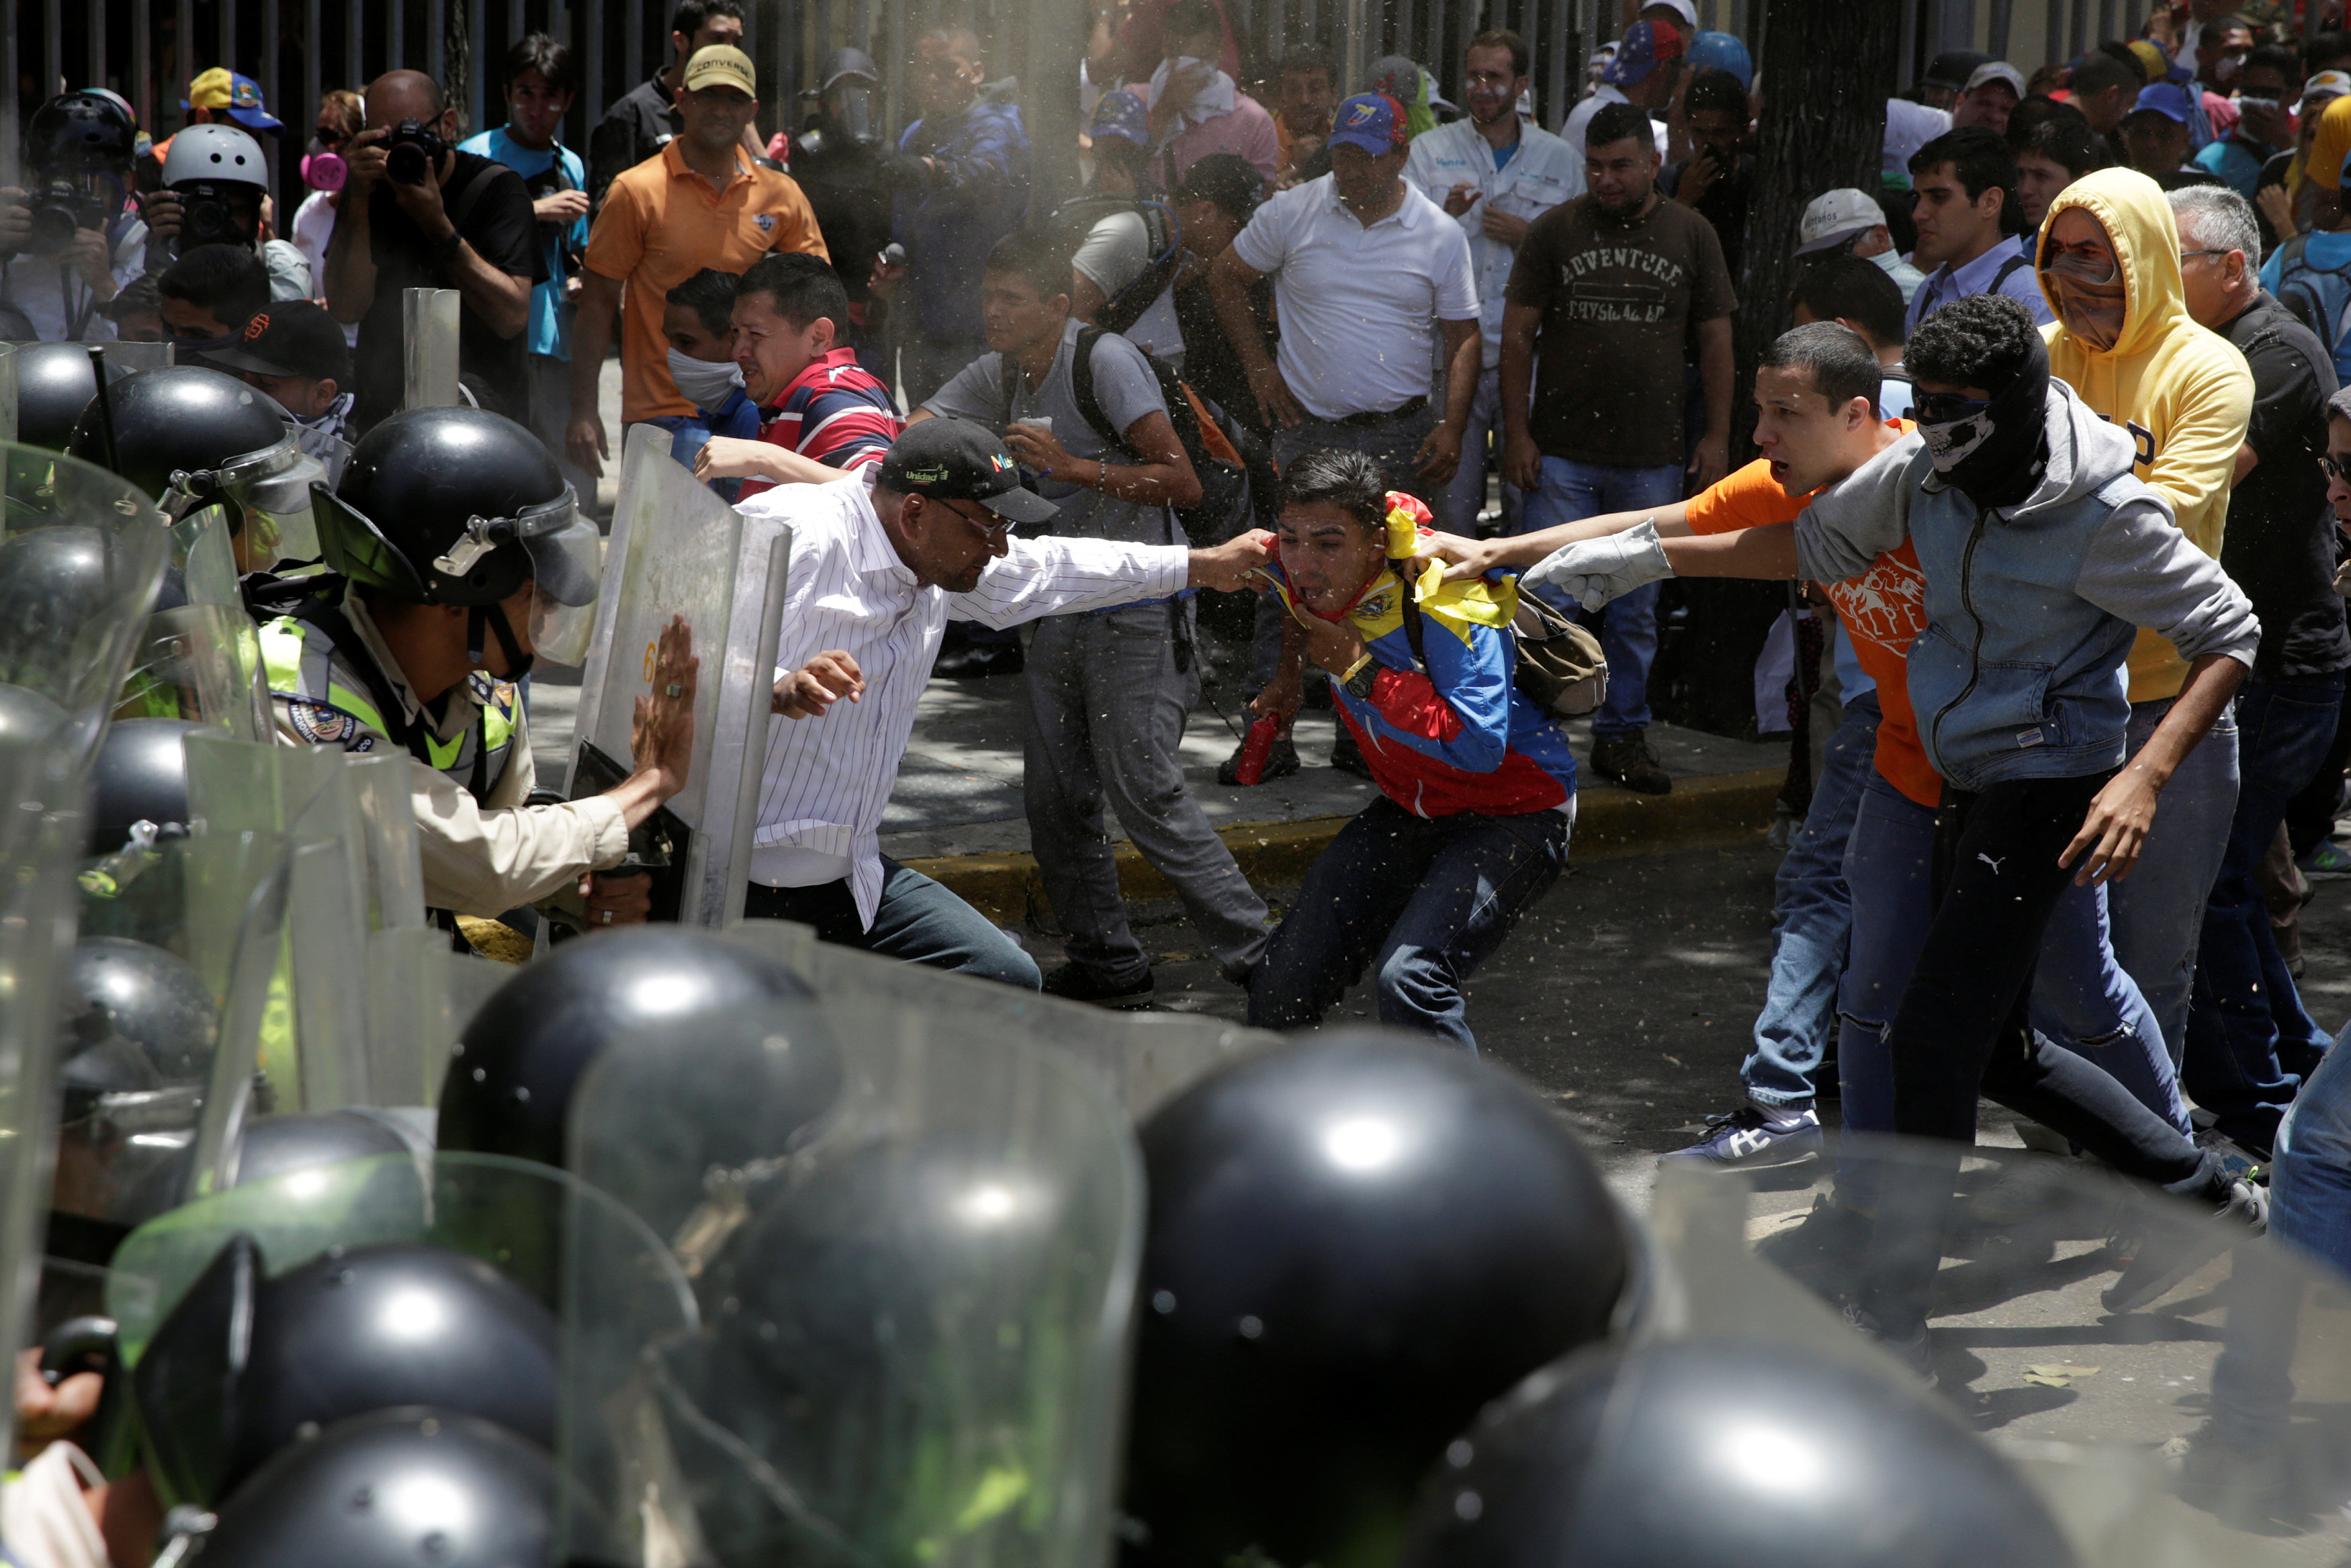 Demonstrators clash with security forces during an opposition rally in Caracas, Venezuela April 4, 2017. REUTERS/Marco Bello